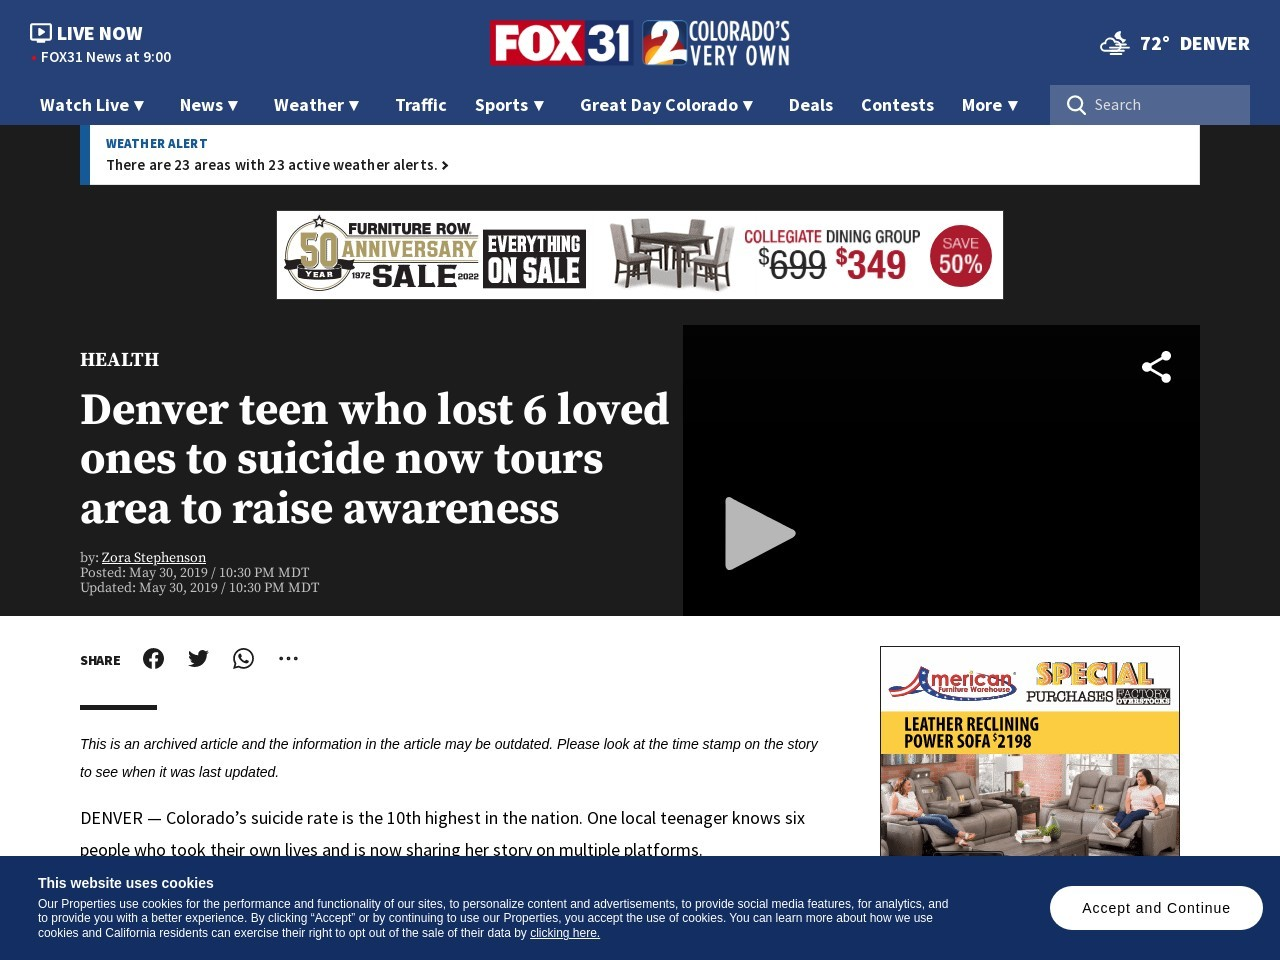 Denver teen who lost 6 loved ones to suicide now tours area to raise awareness